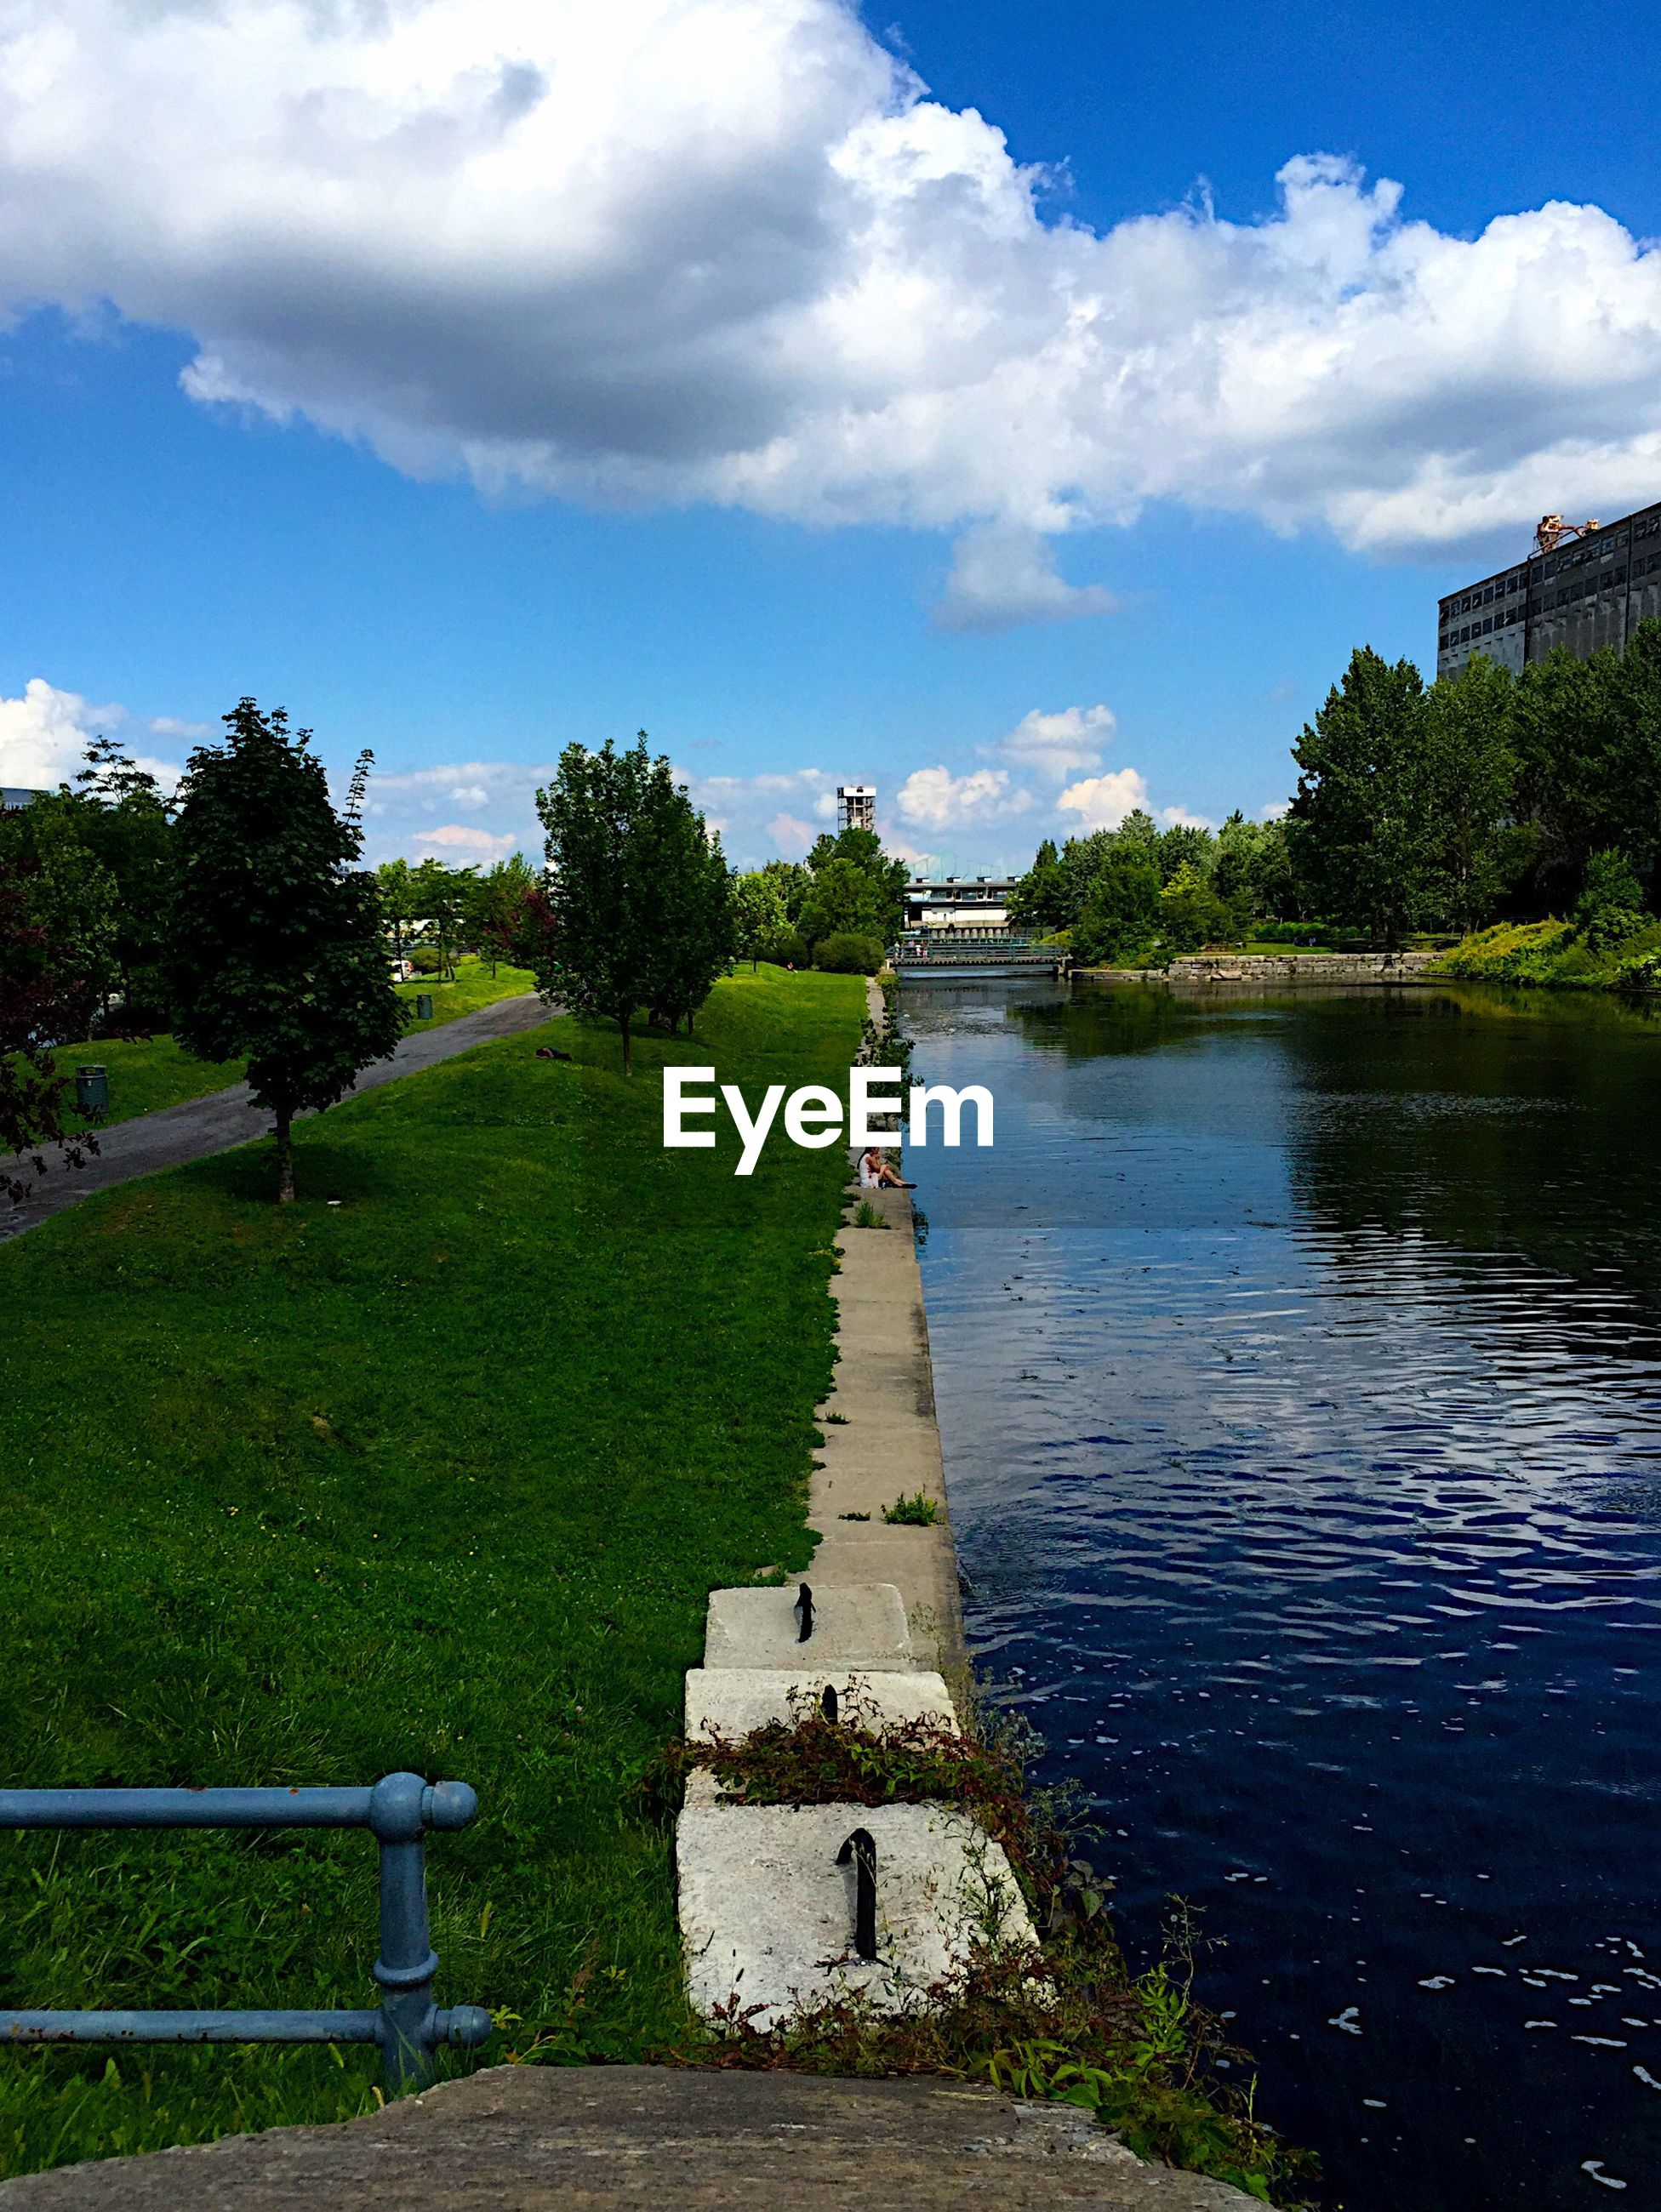 Woman sitting at lachine canal park against sky